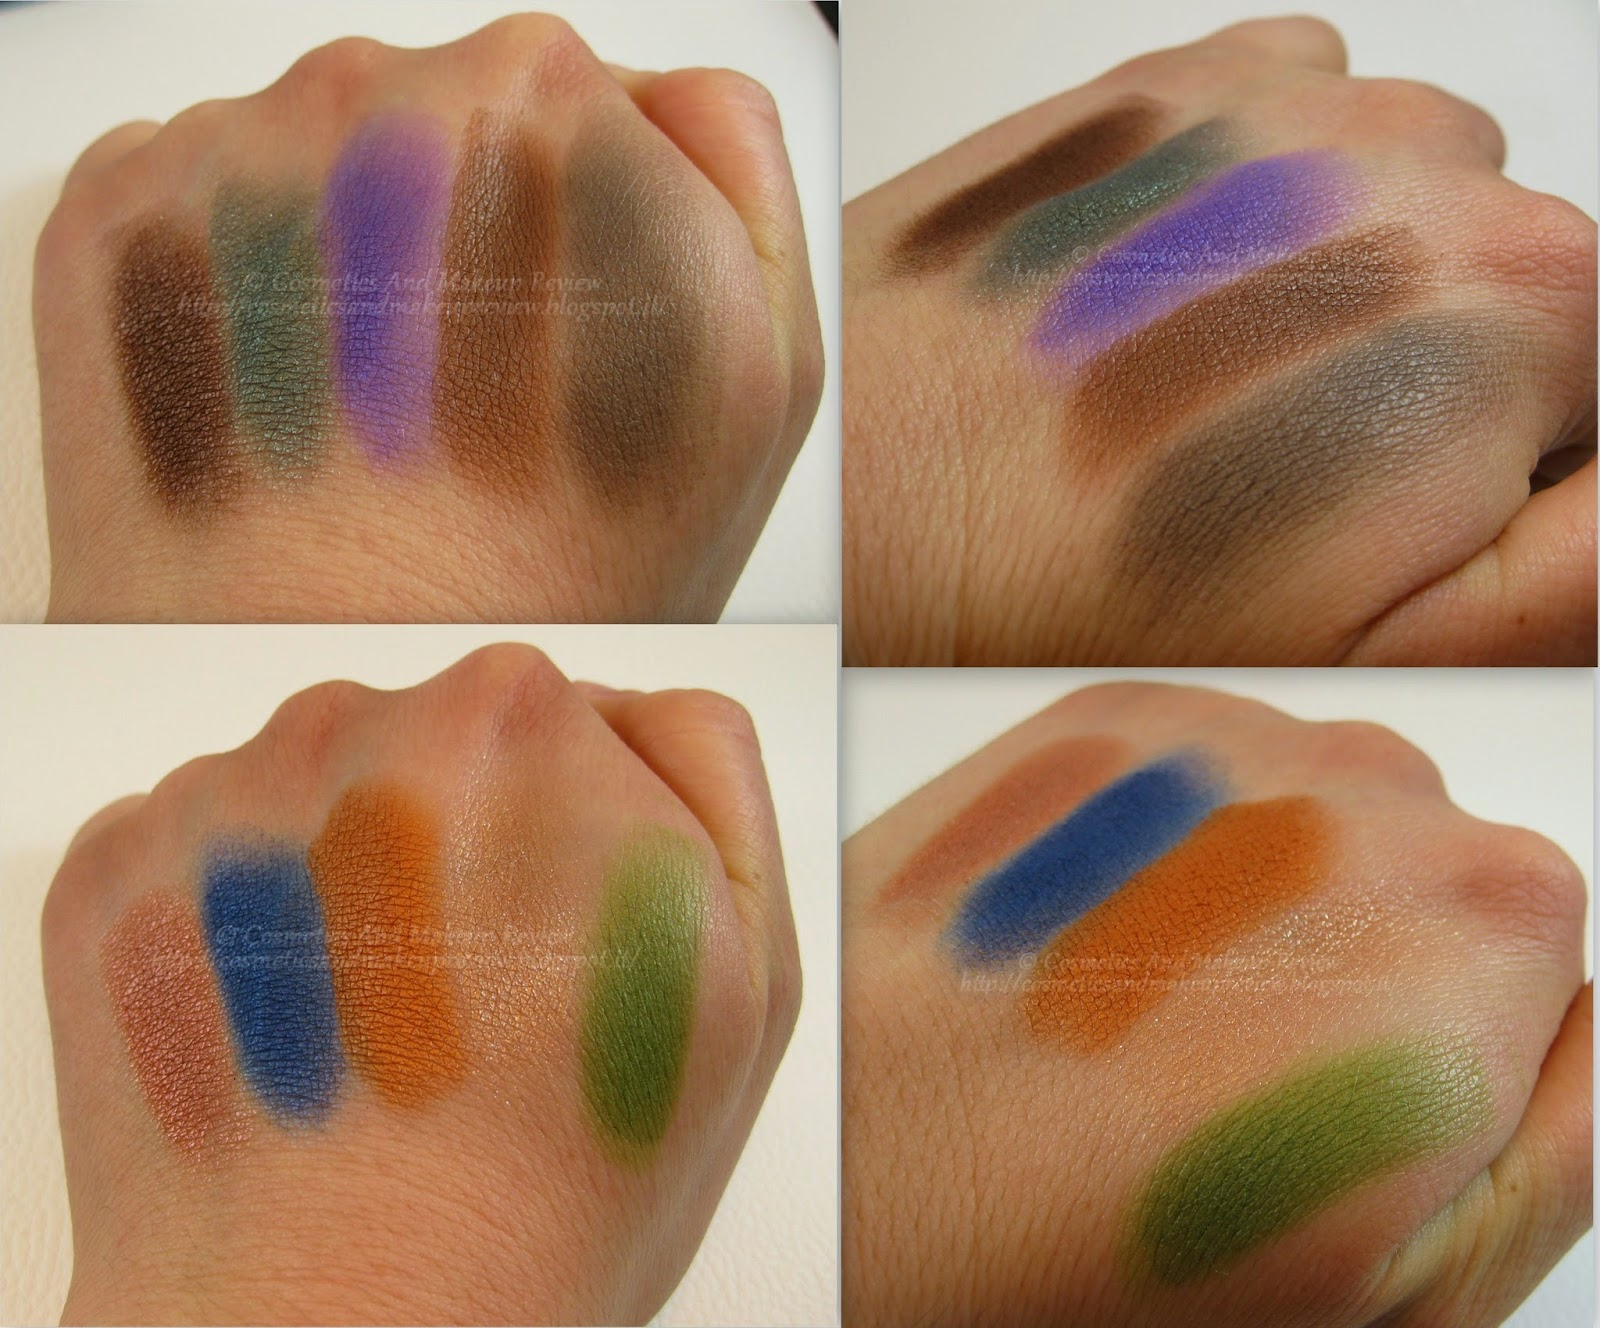 Neve Cosmetics - Makeup Delight Palette - swatches